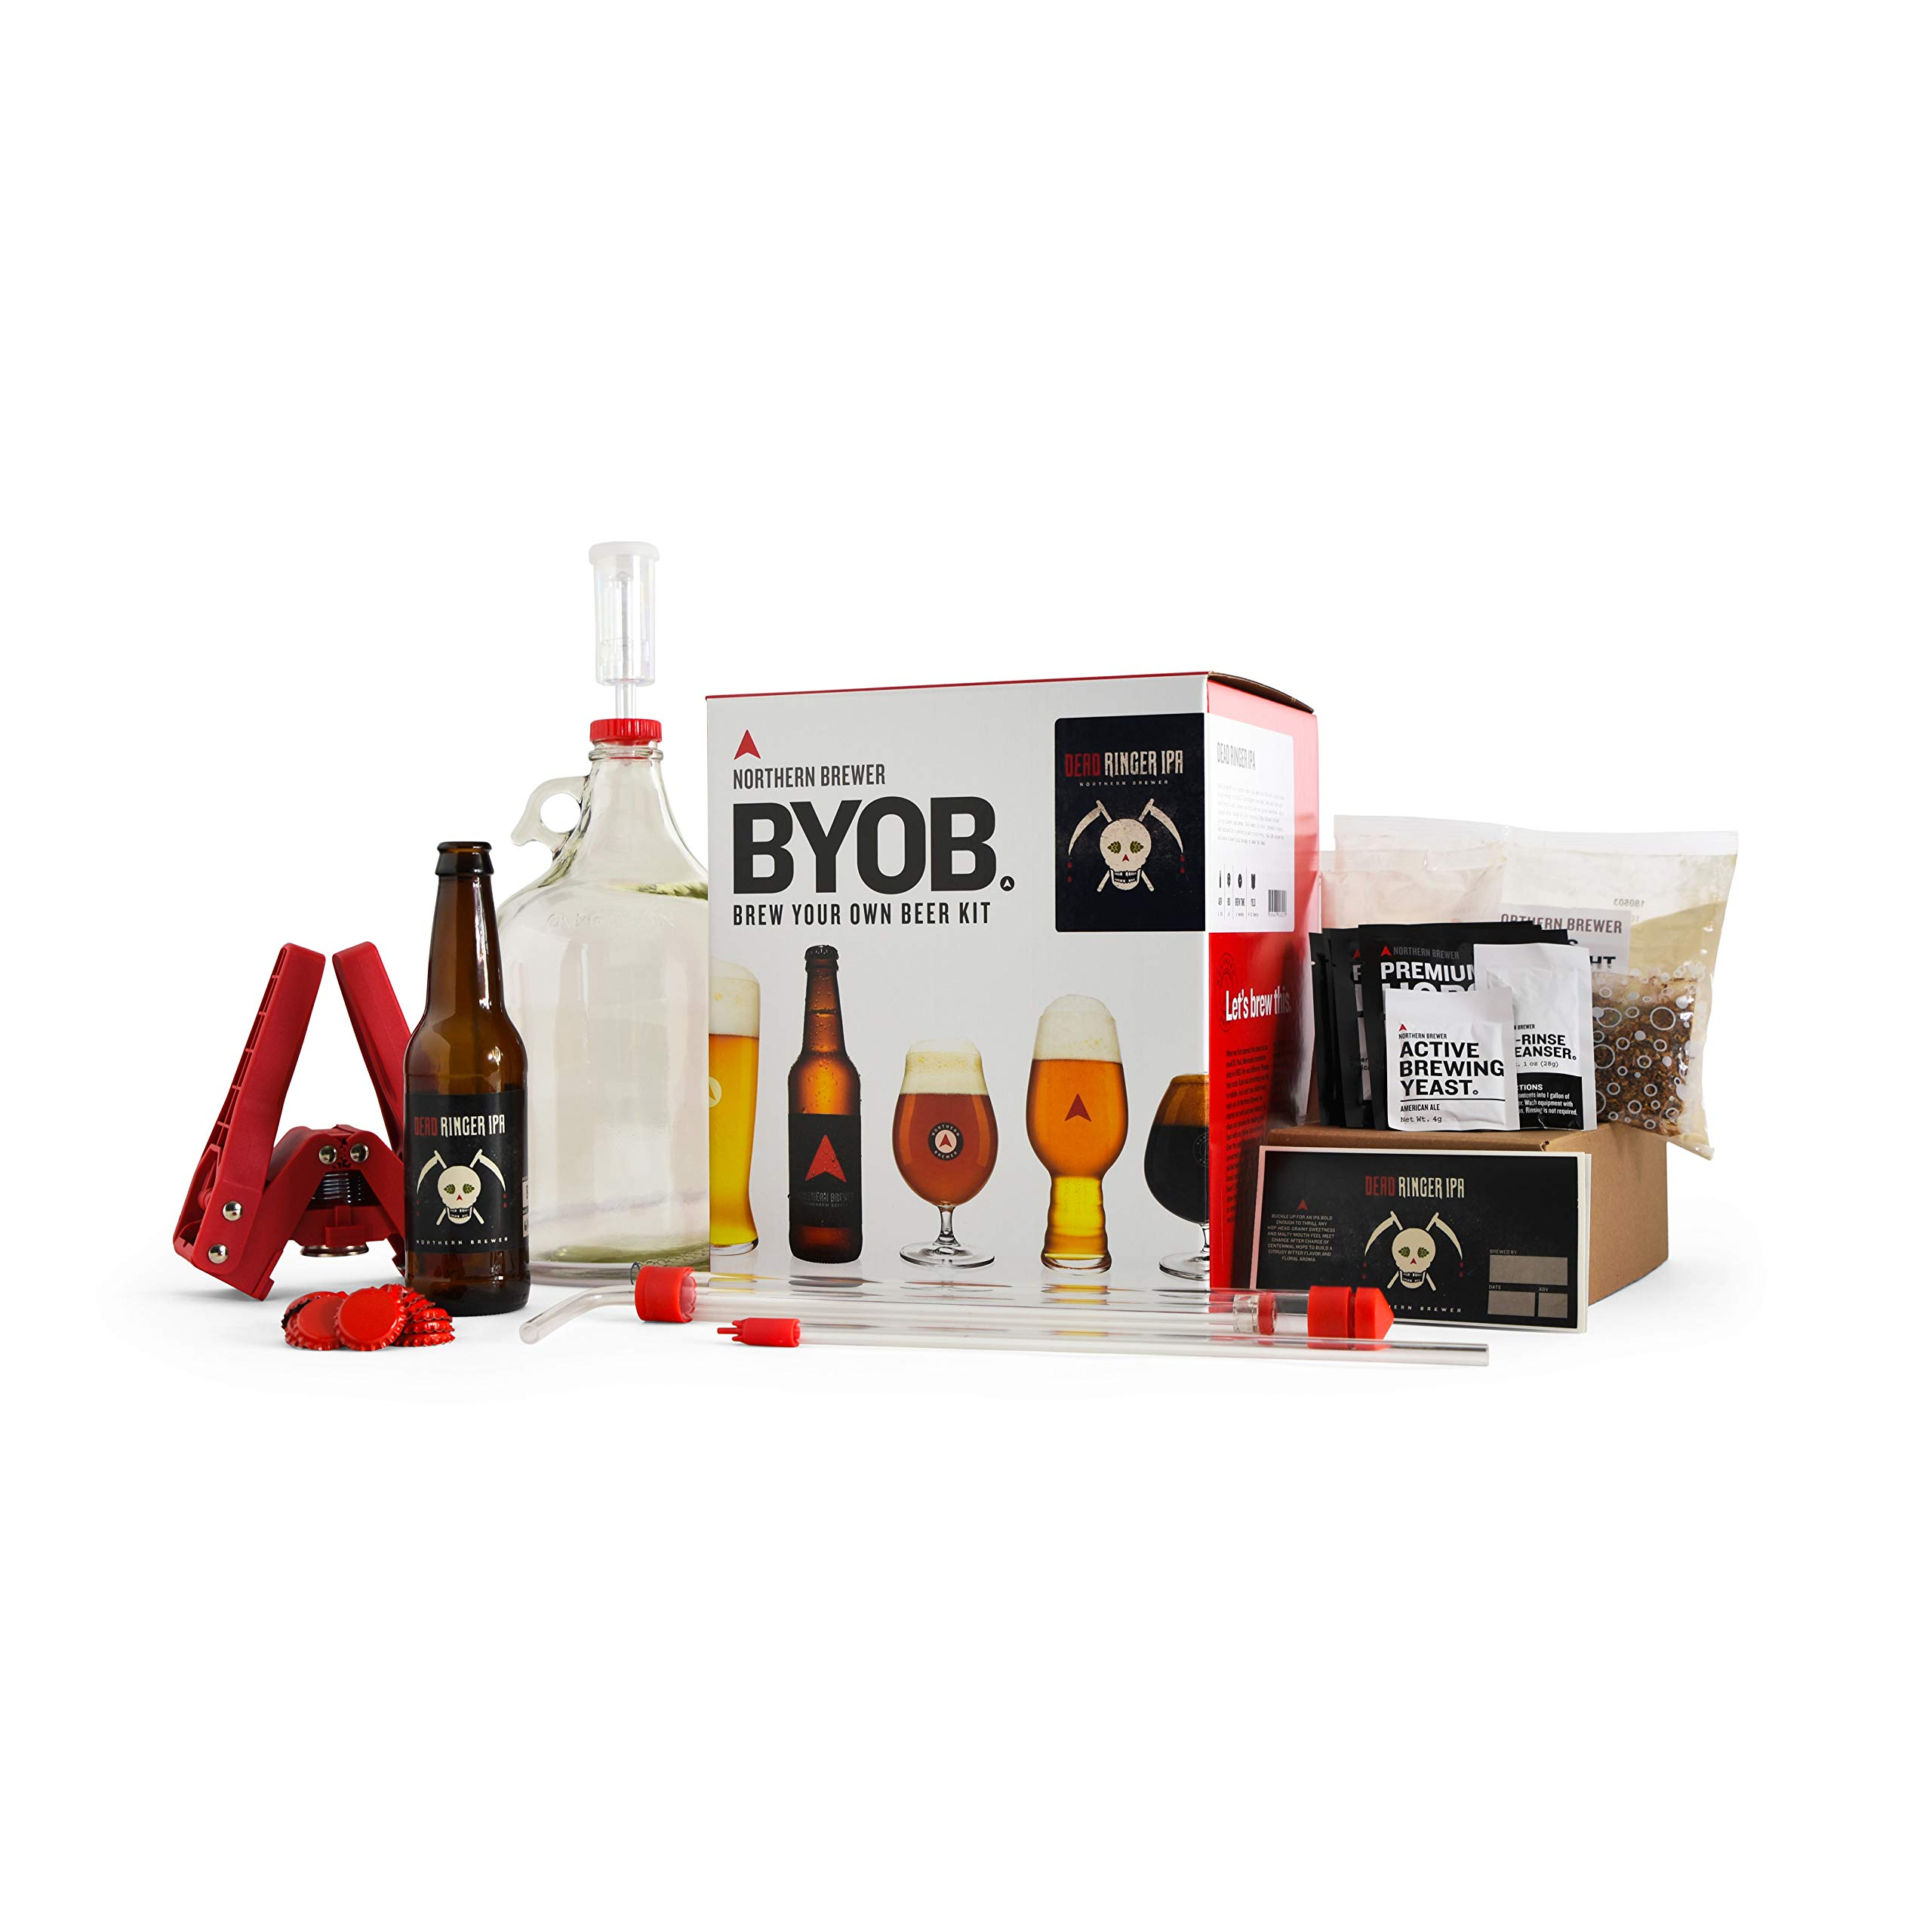 BYOB by Northern Brewer - Brew Your Own Beer Home Beer Making Kit (Dead Ringer IPA)